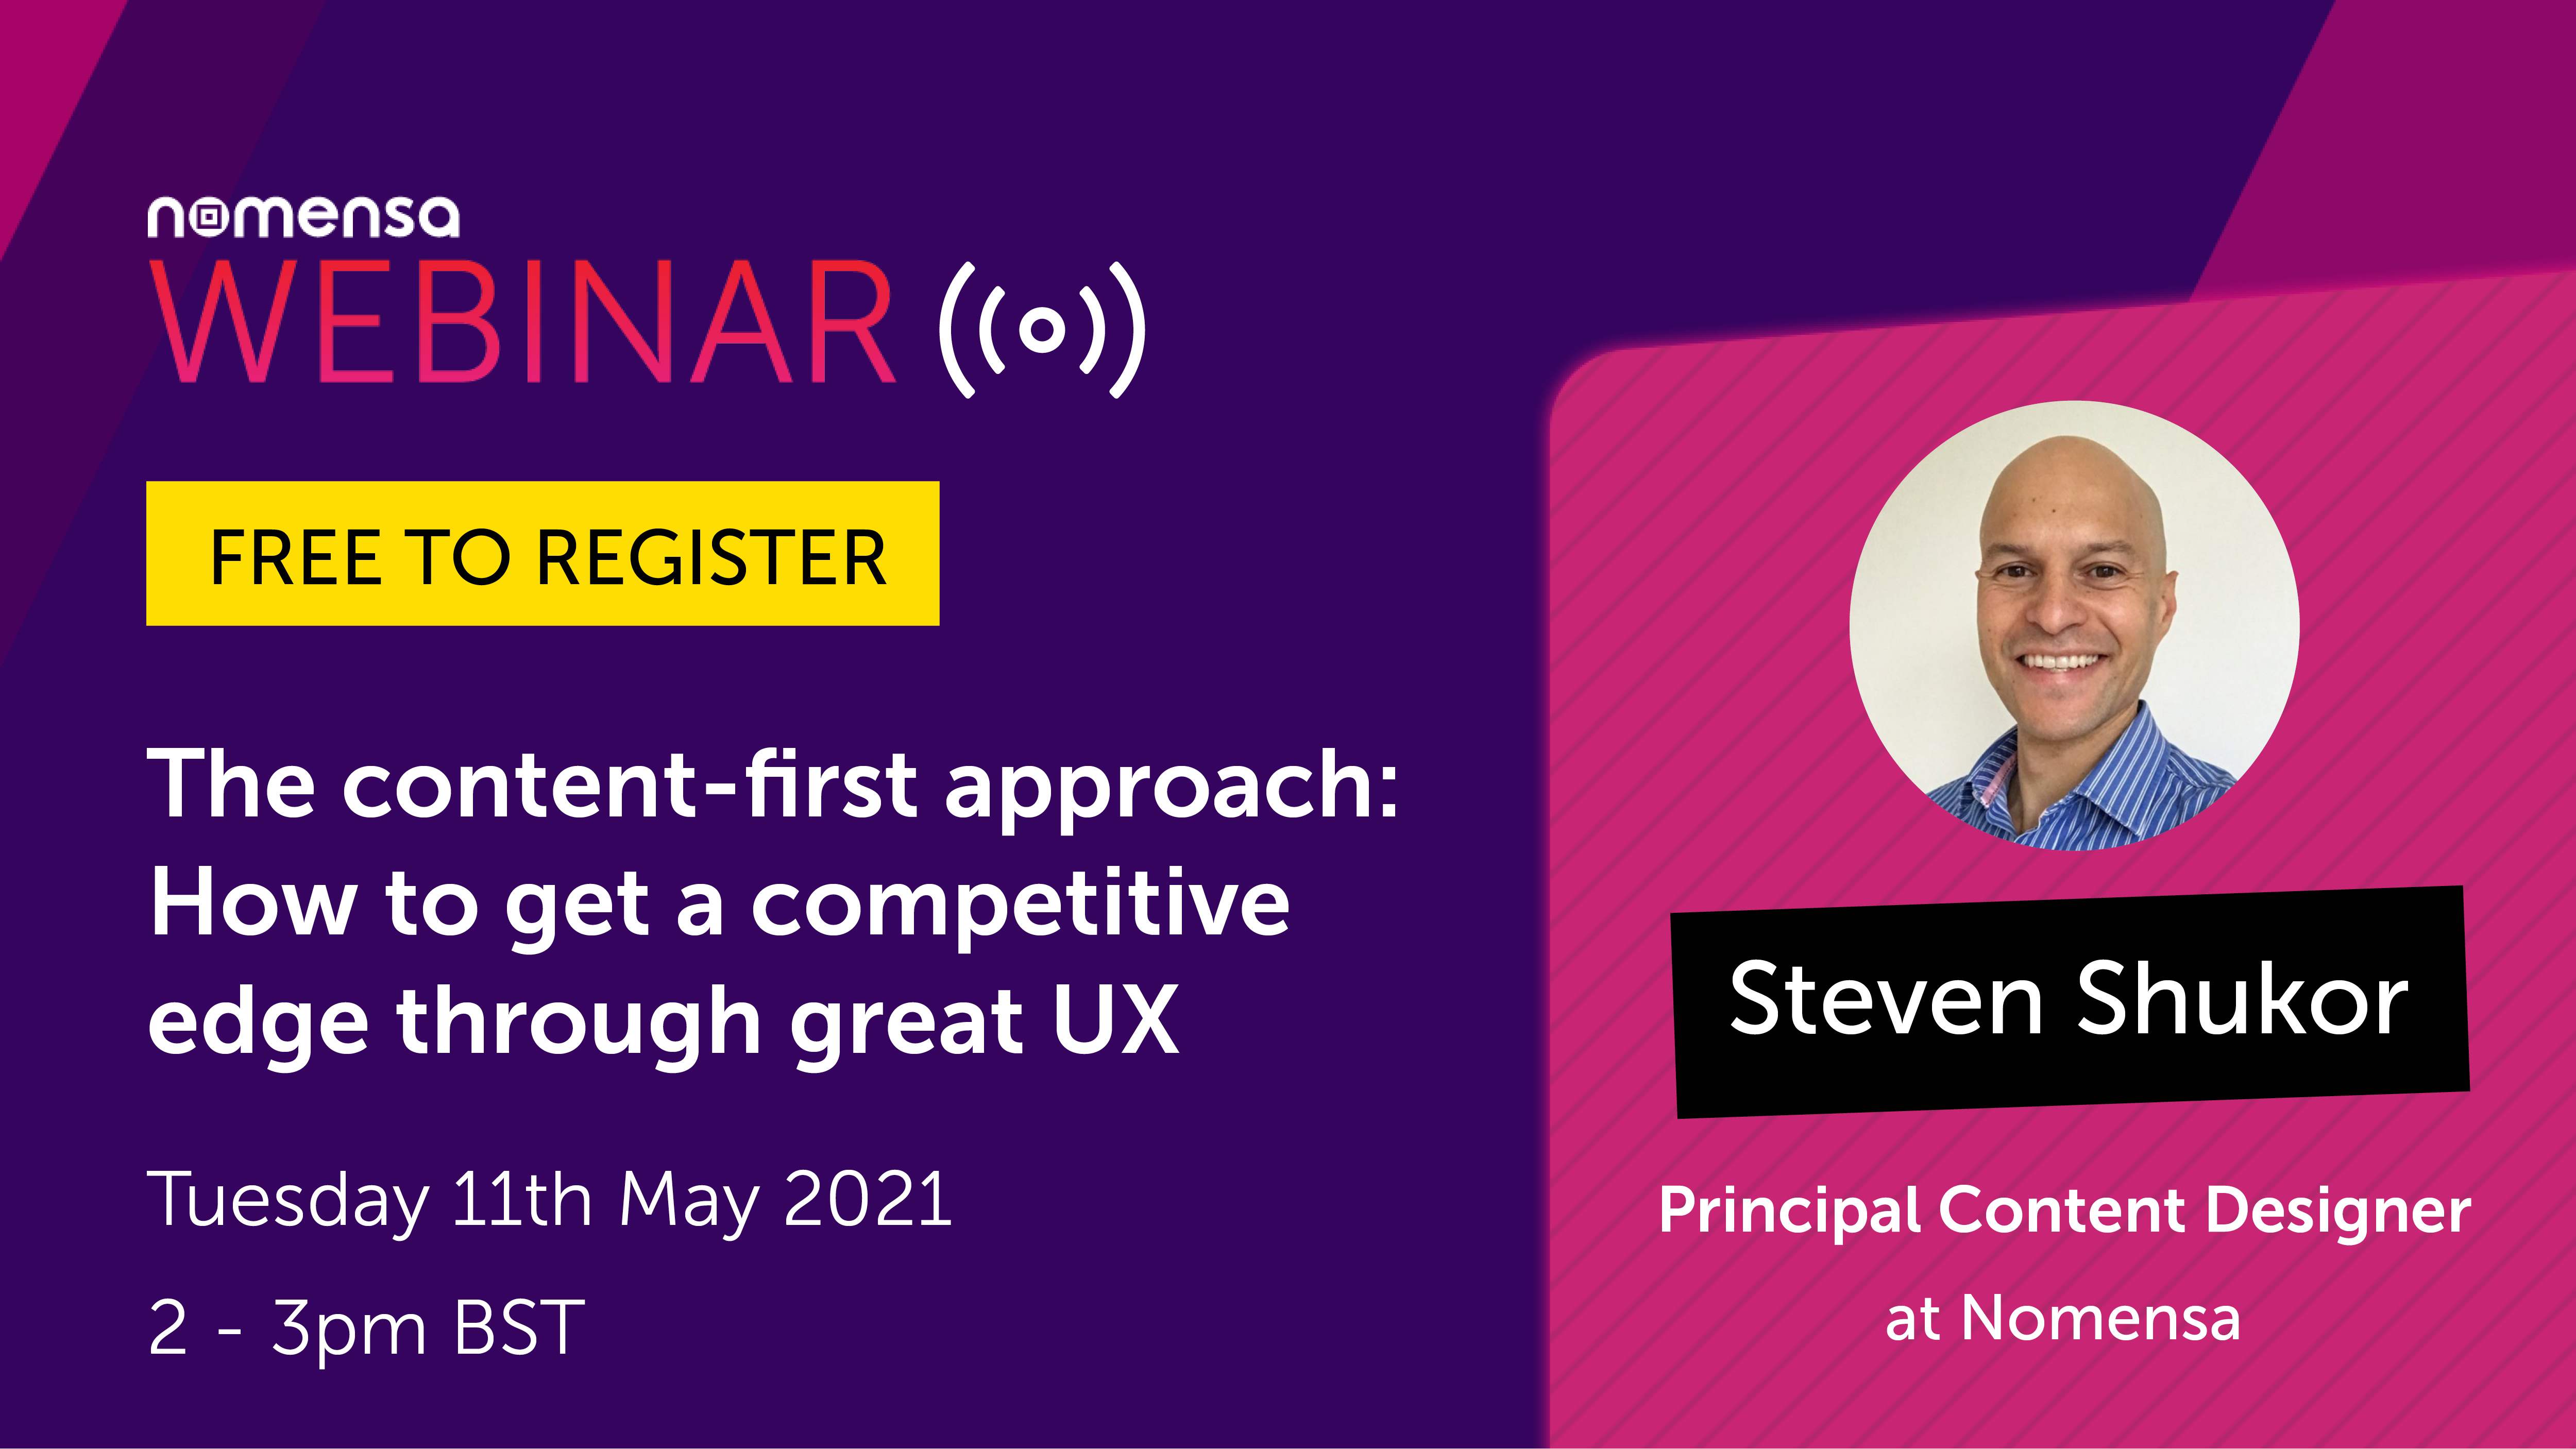 Register for our free webinar:  The content-first approach - How to get a competitive edge through great UX with Principal Content Designer Steven Shukor. 2pm BST on Tuesday 11th May